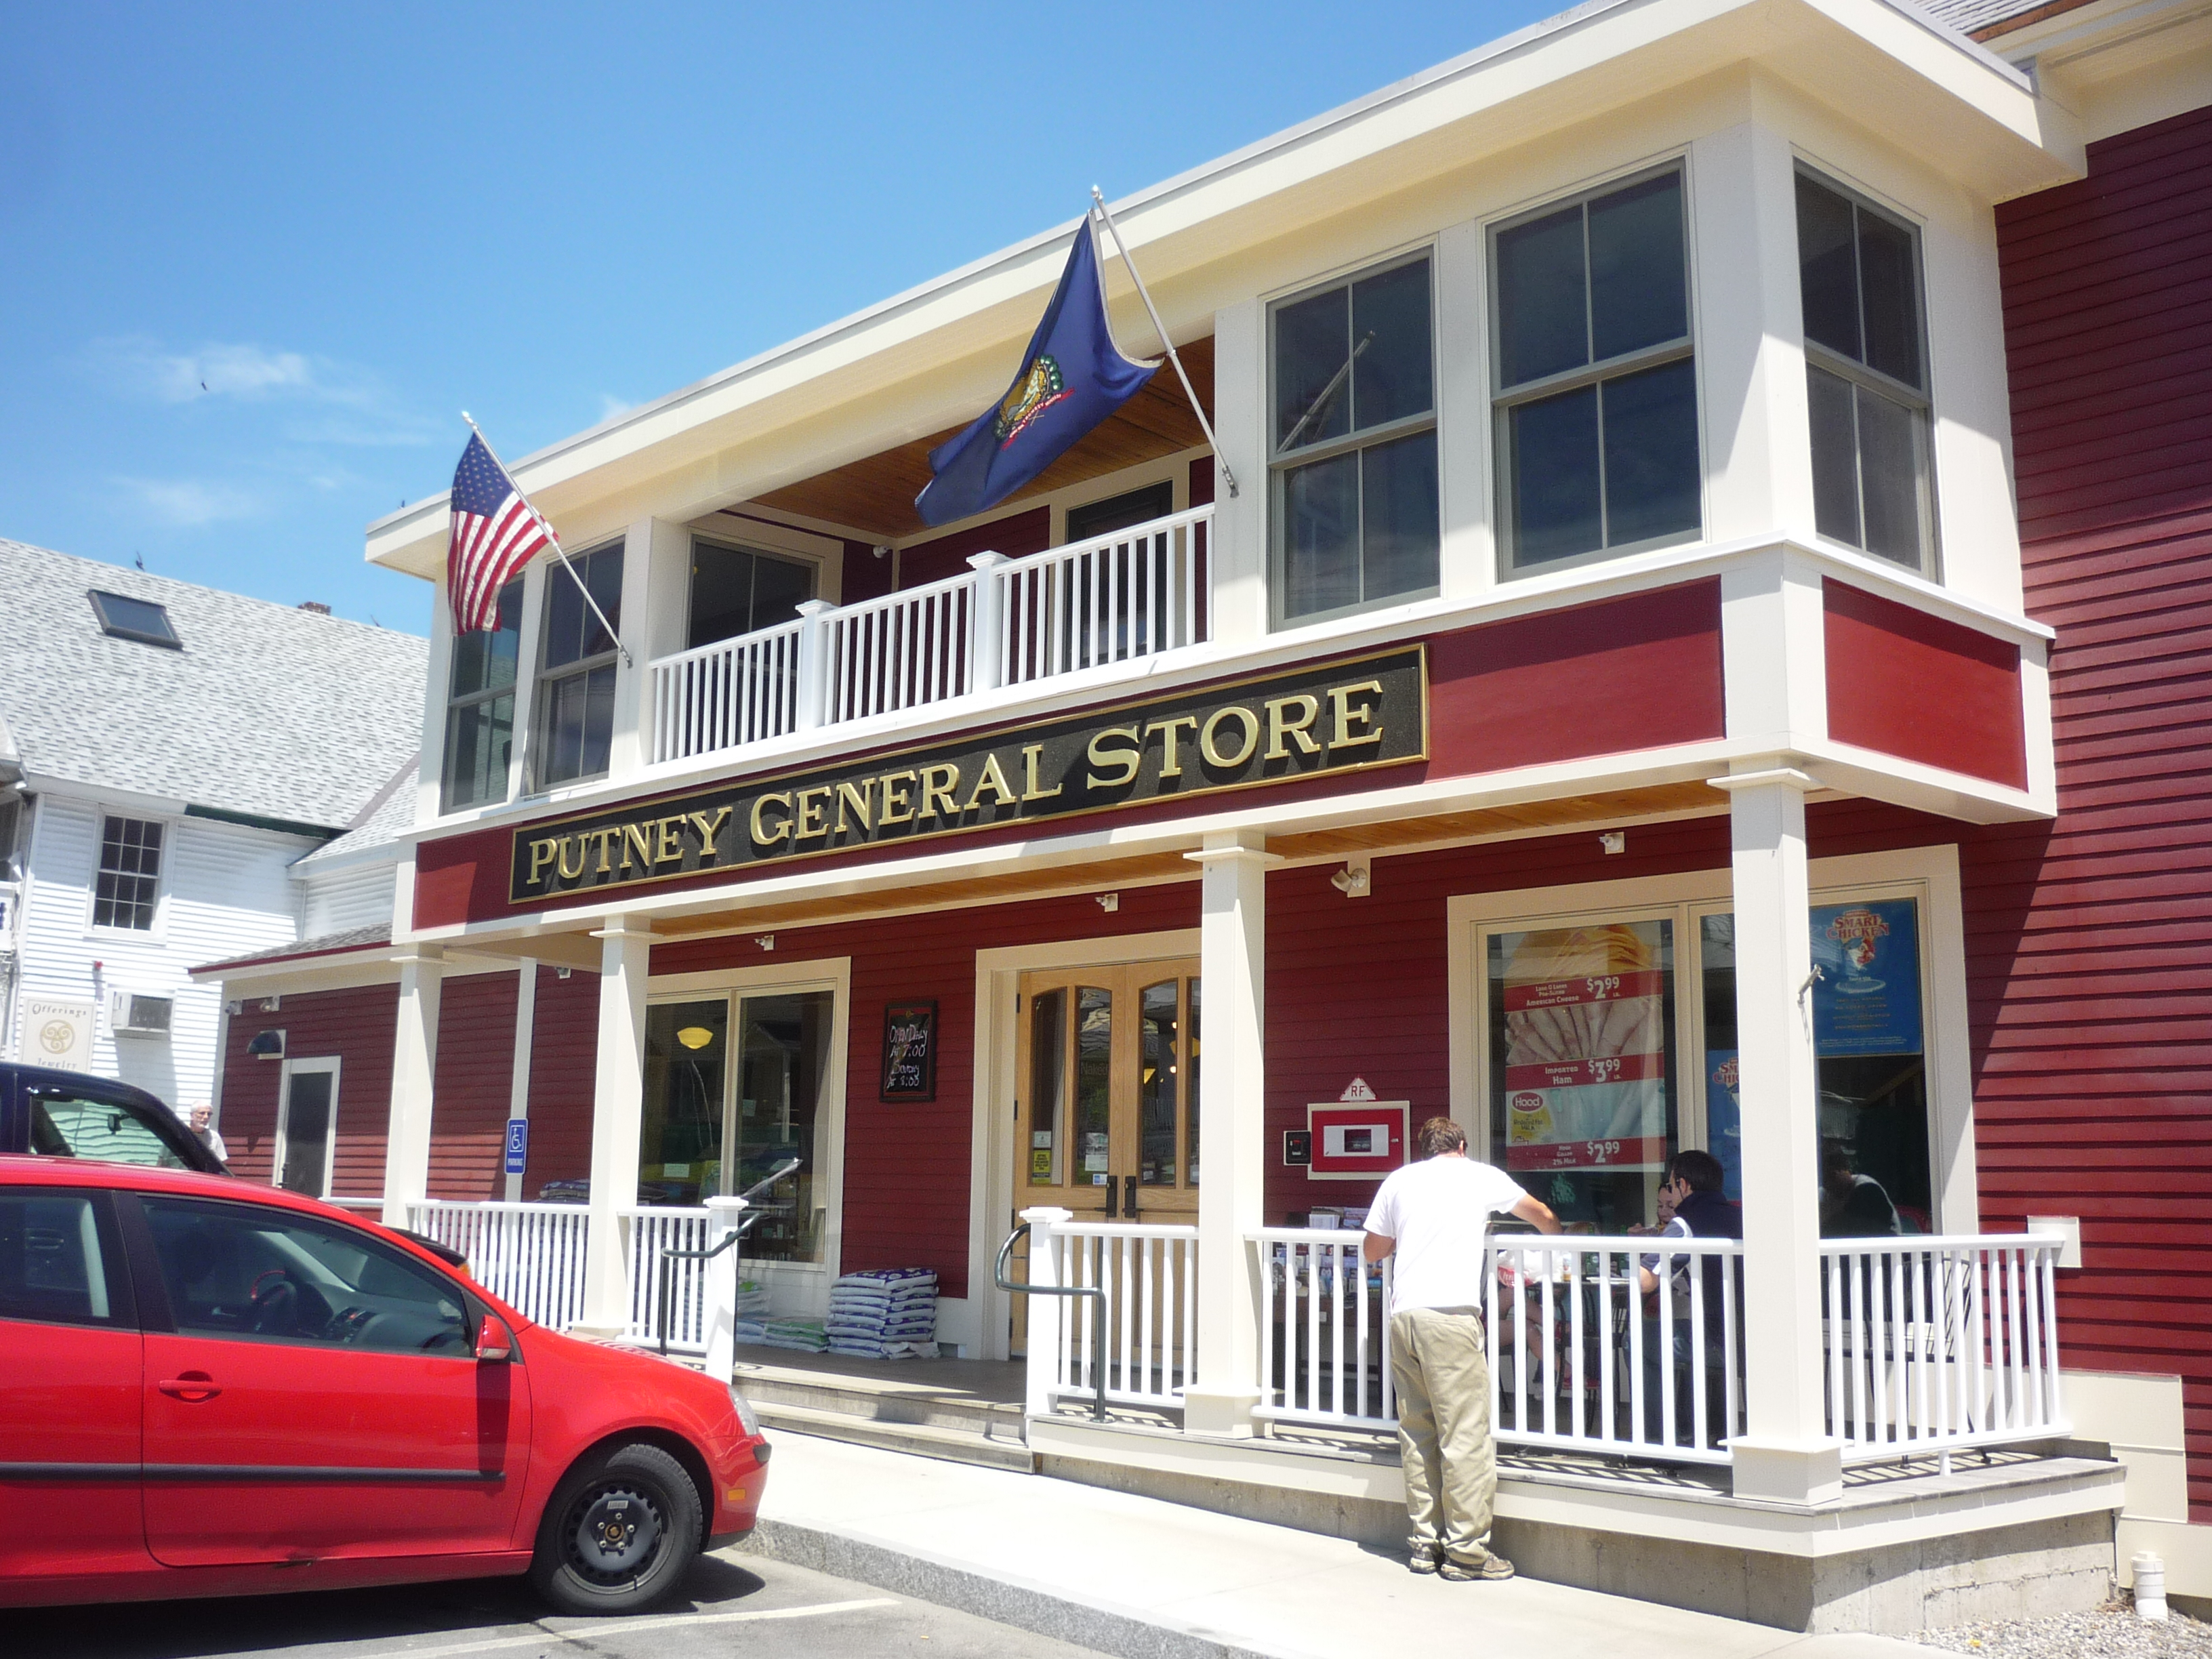 You Know You Are in Vermont When At The Putney General Store